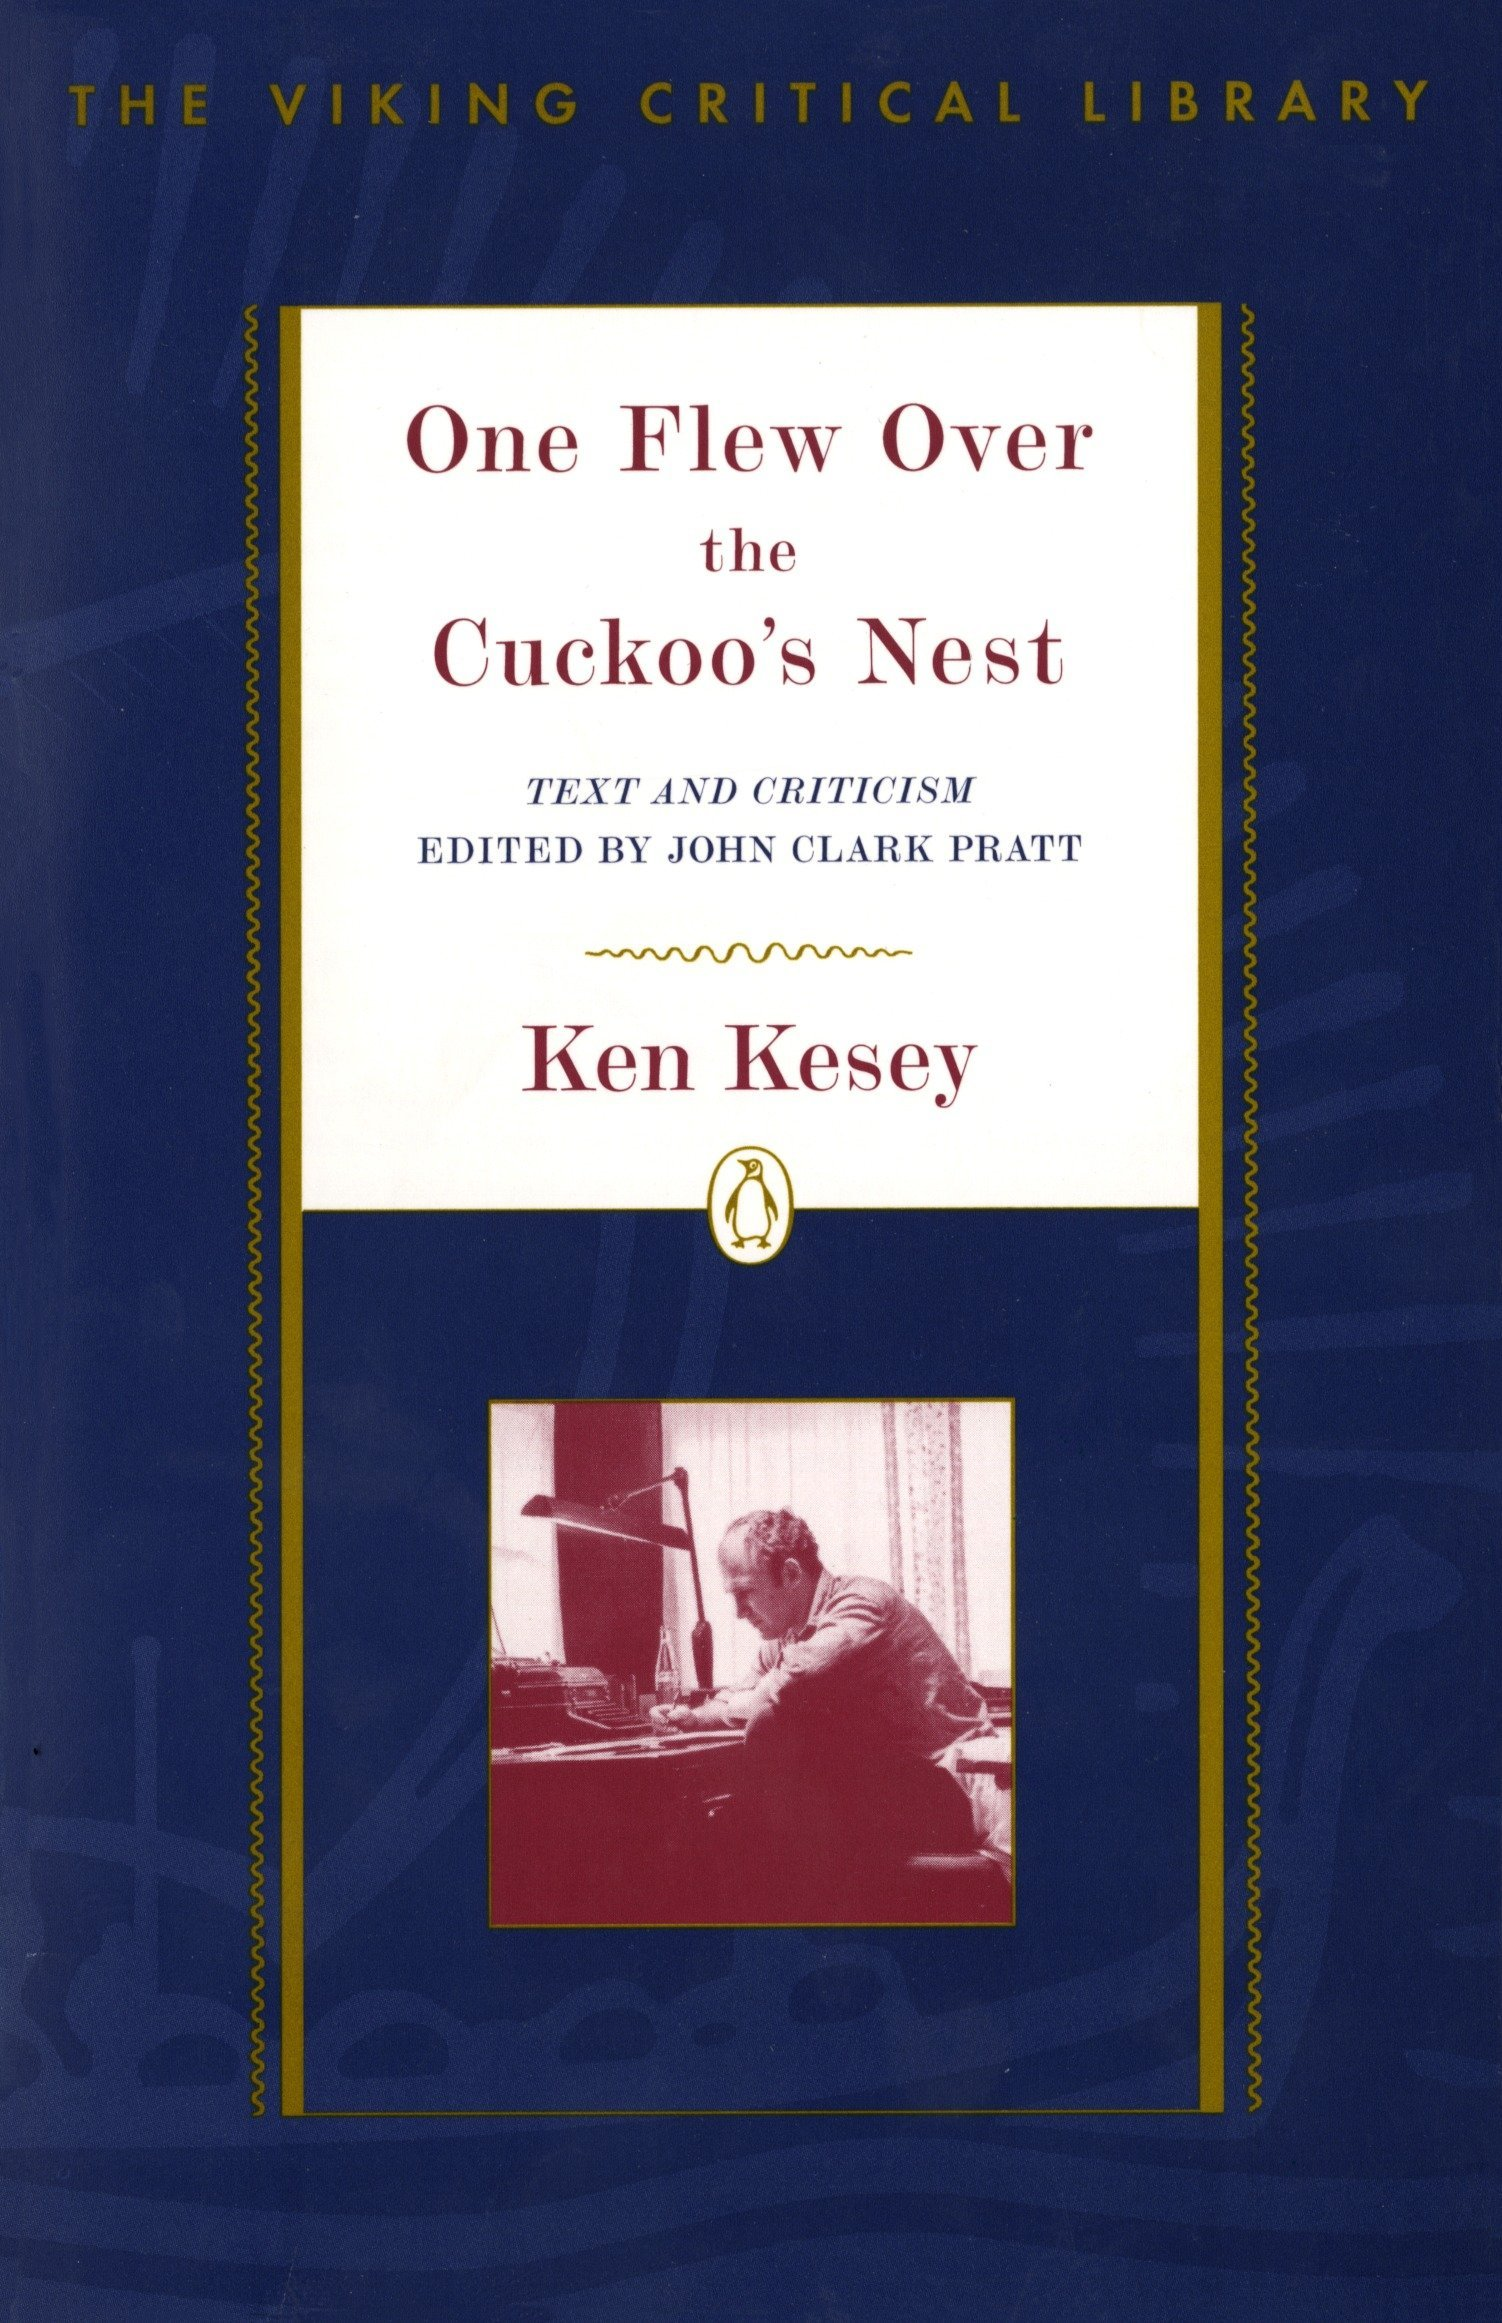 One Flew Over the Cuckoo's Nest: Revised Edition (Critical Library, Viking)